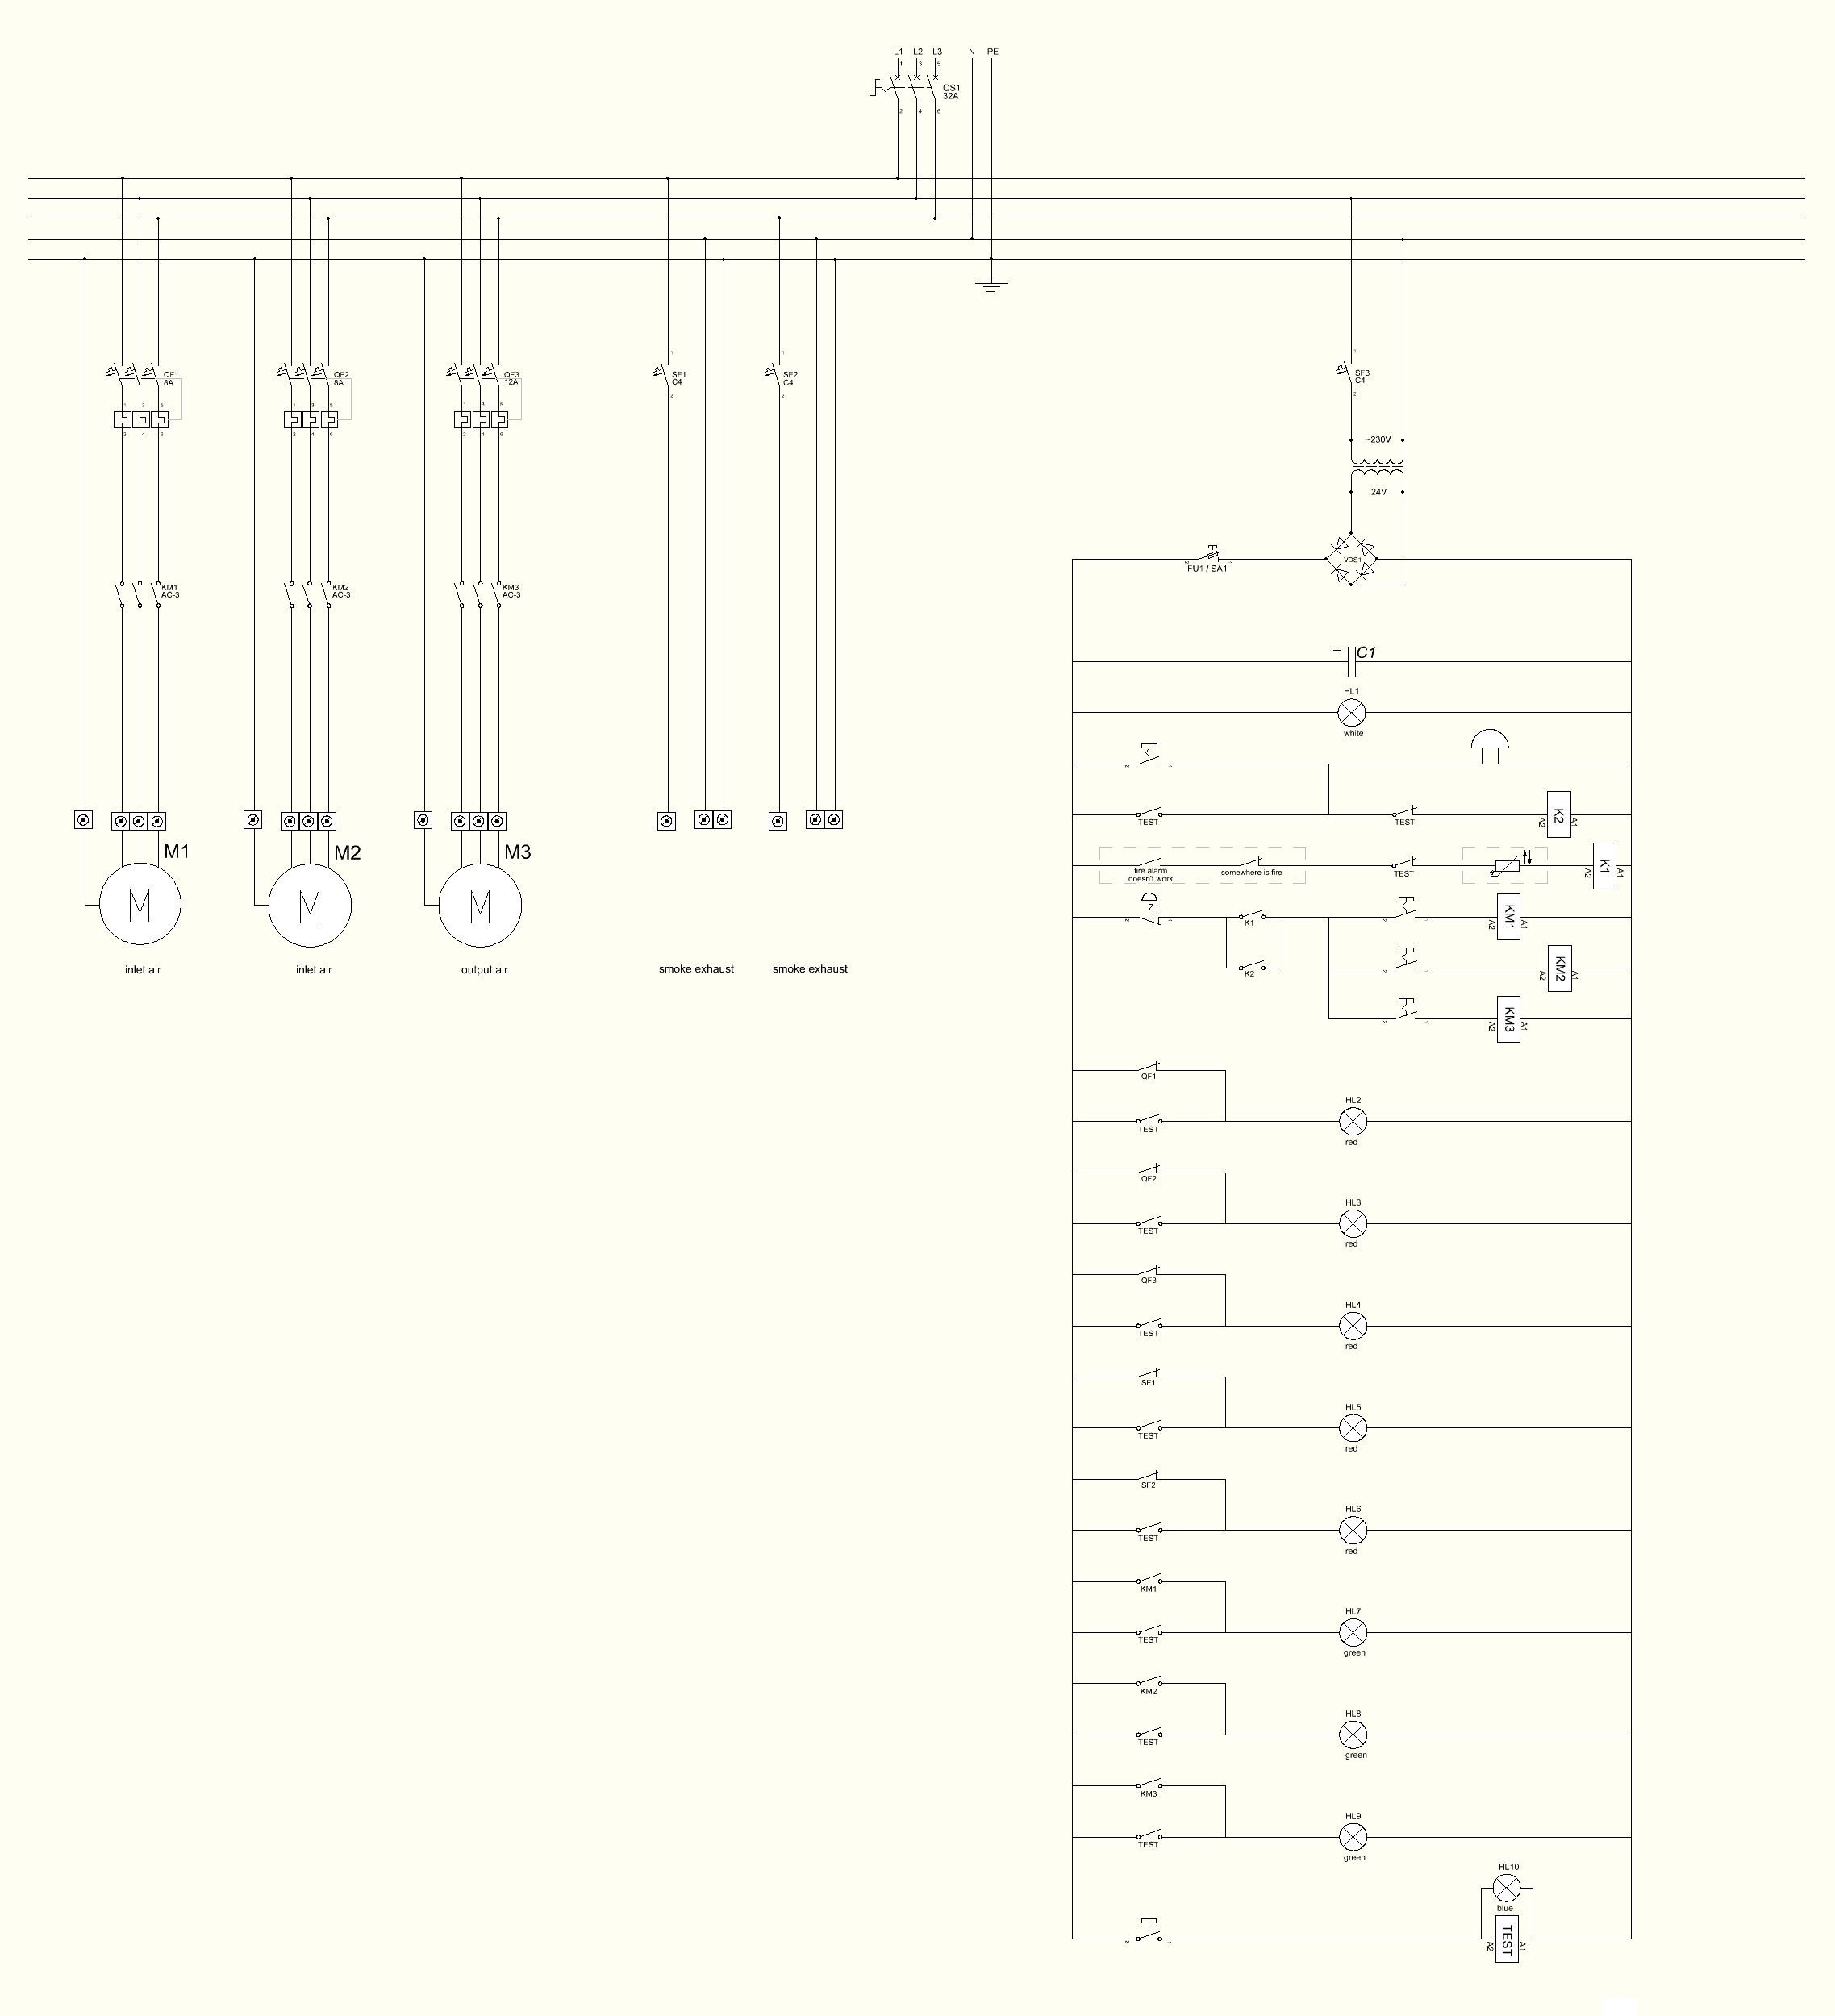 Filewiring Diagram Of Air Fans Control Centre Wikimedia Commons L1 L2 Wiring